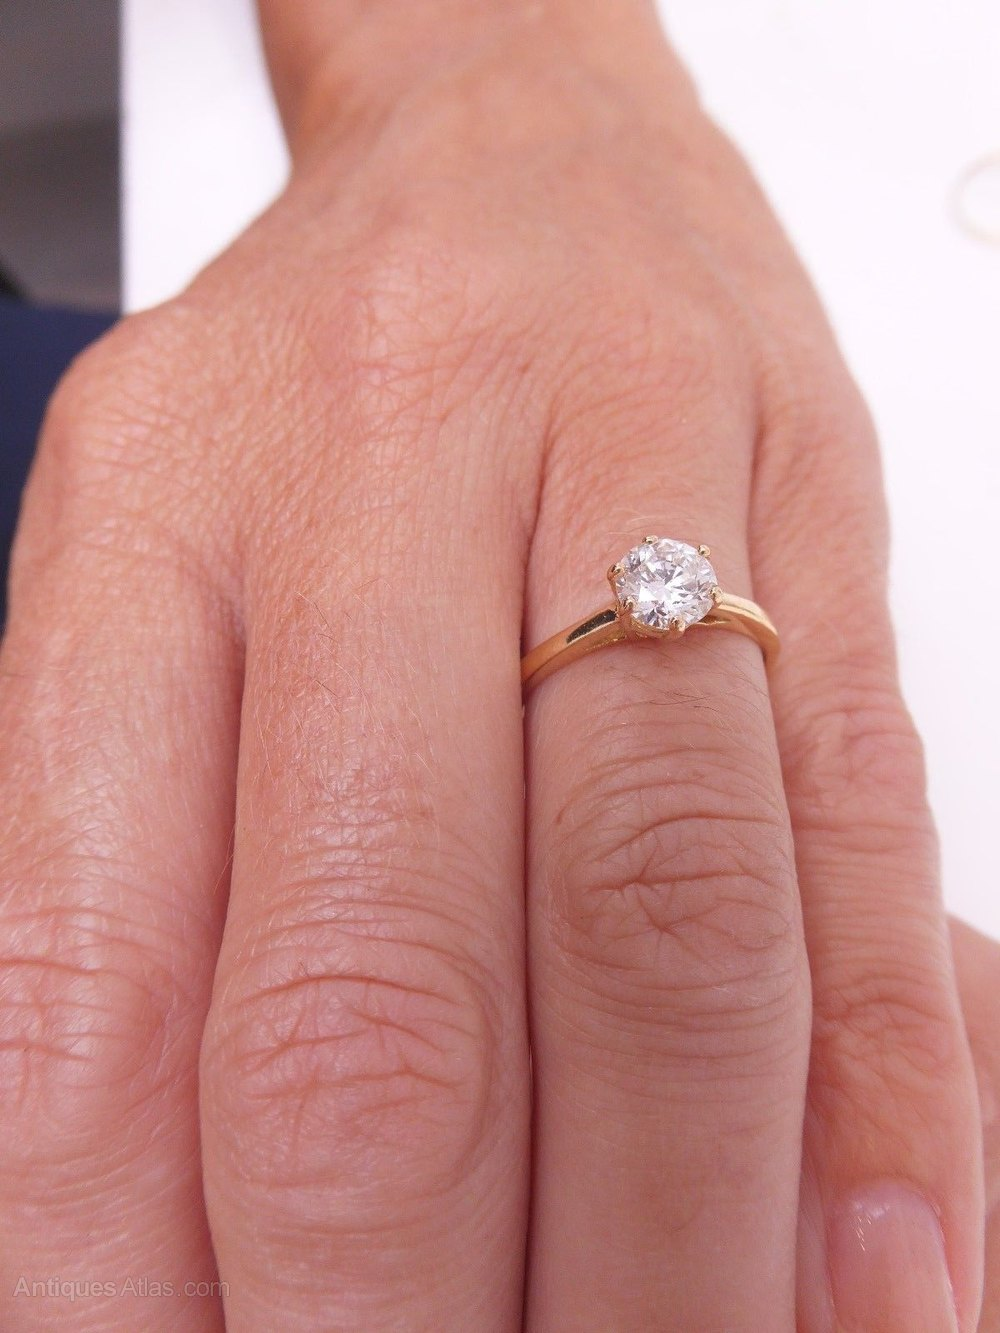 Antiques Atlas - Stunning 18ct Gold 0.8ct Diamond Solitaire Ring